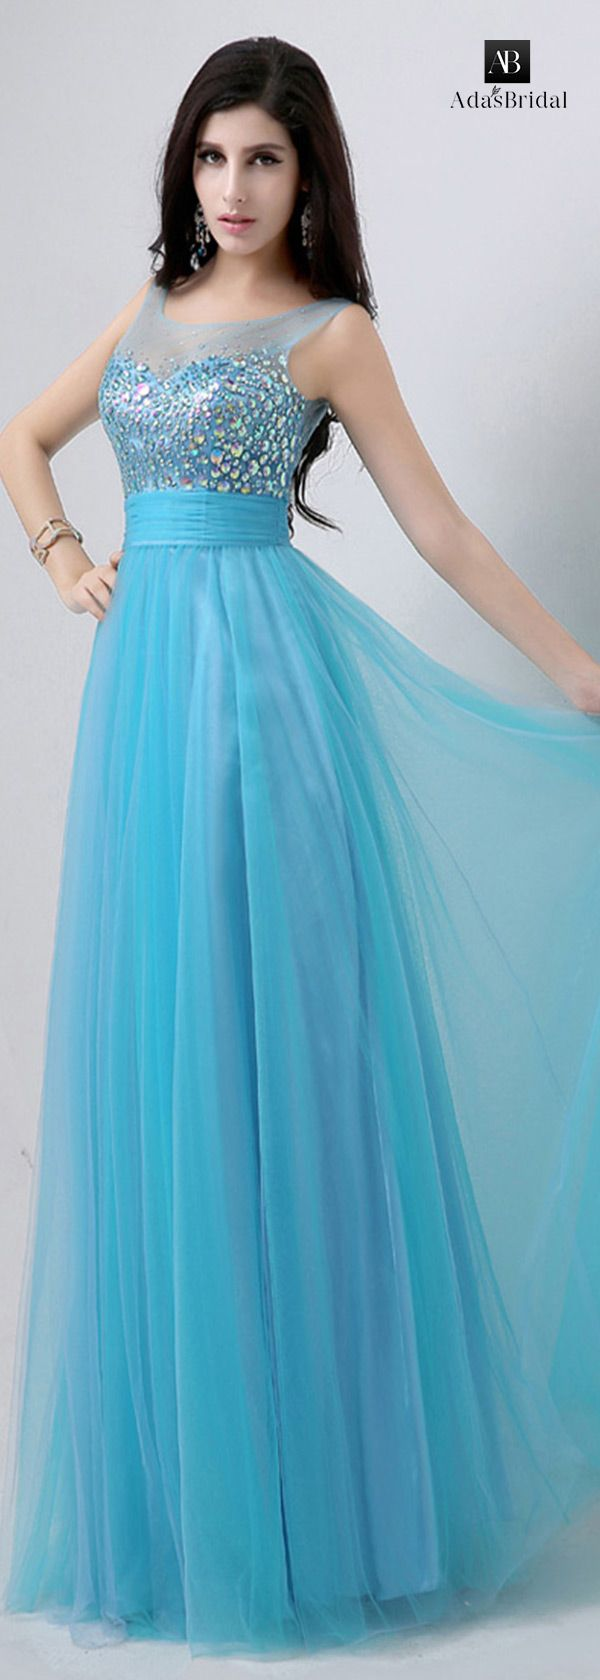 In stock fabulous tulle scoop neckline A-line prom dresses with ...